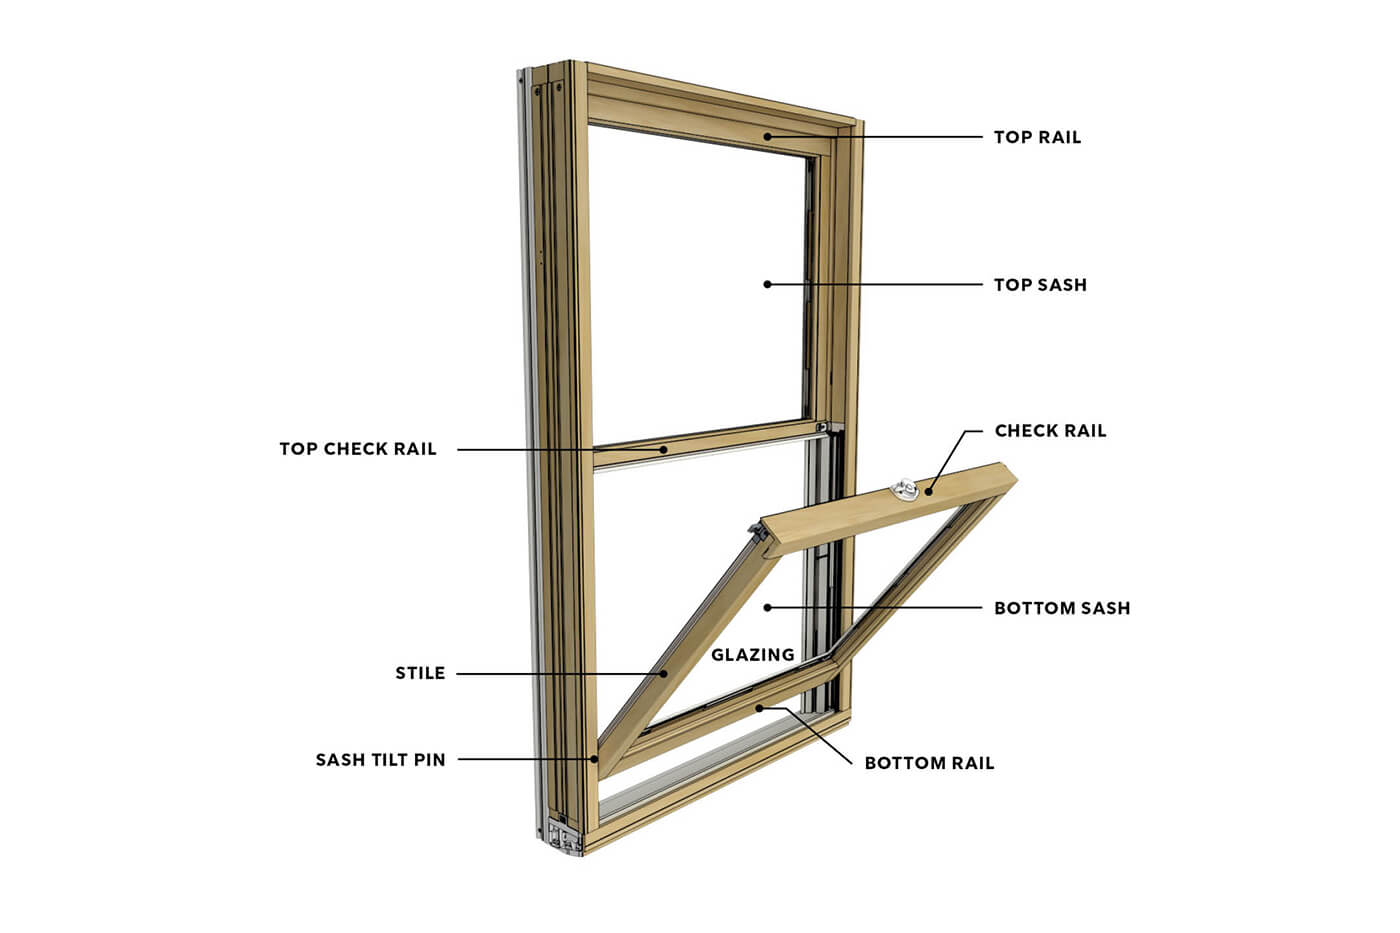 Diagram of Double Hung Window Parts.